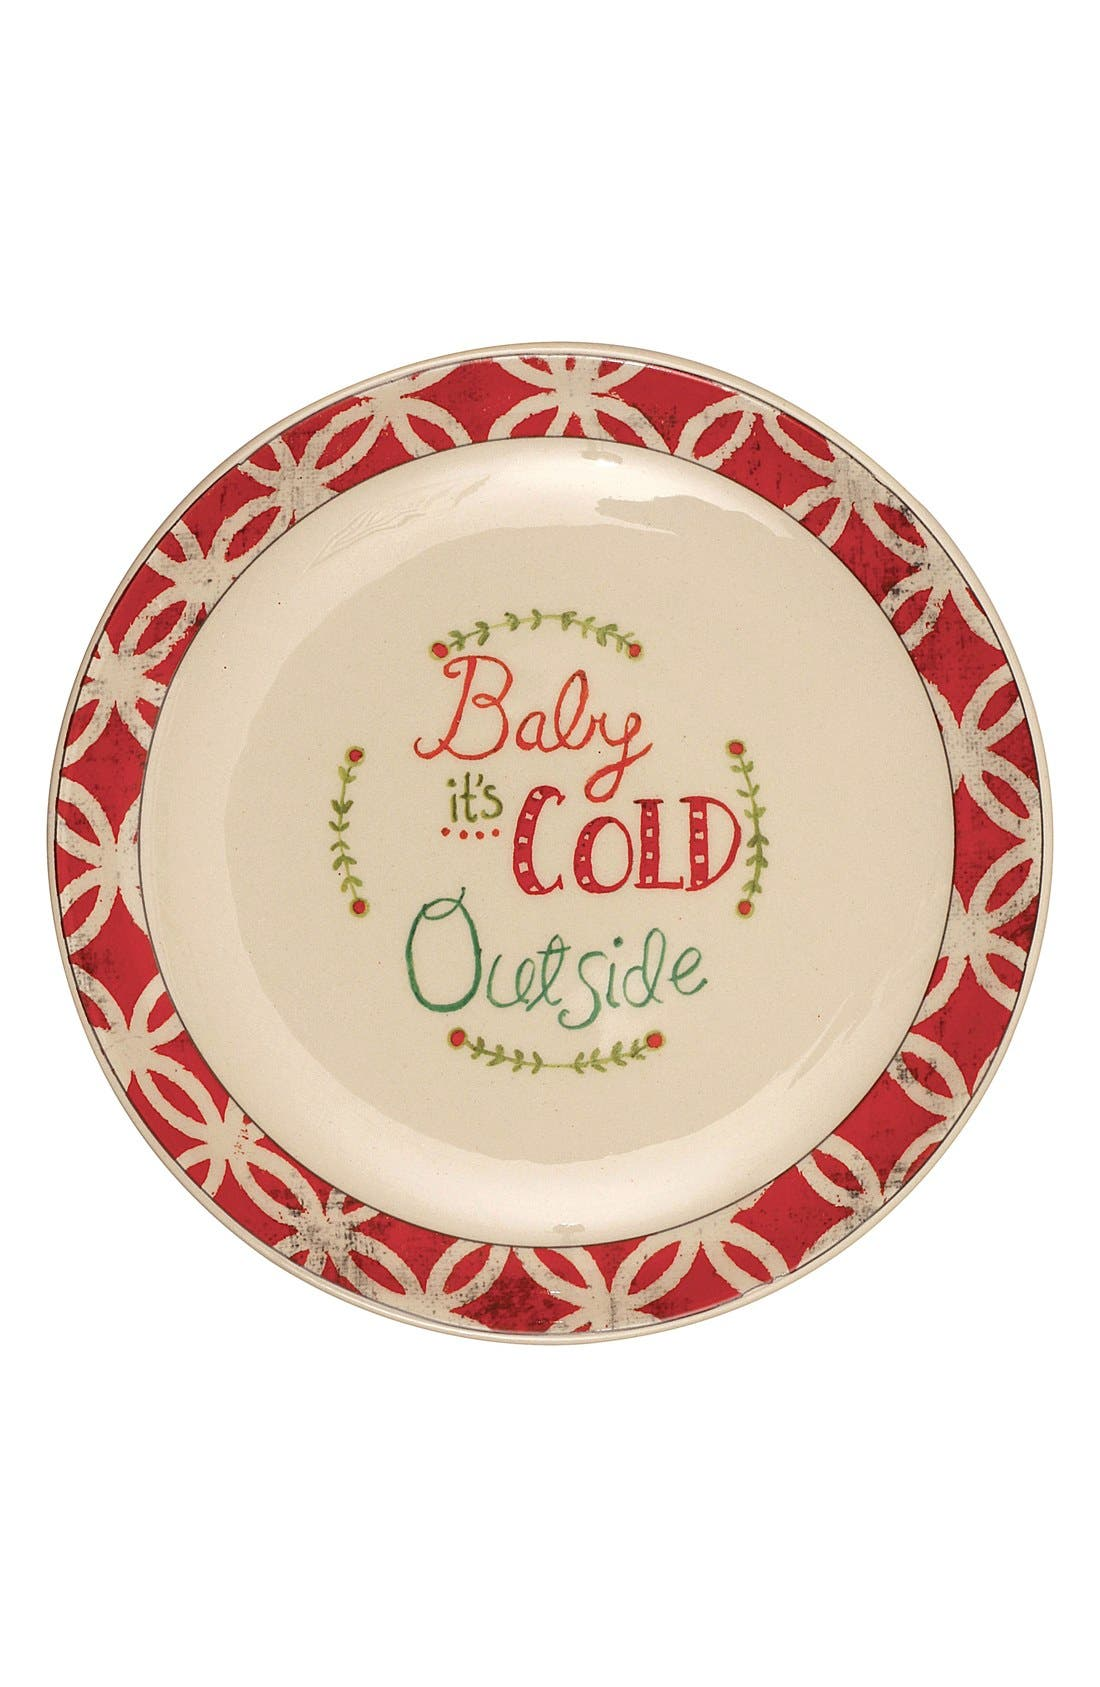 'Baby It's Cold Outside' Ceramic Plate,                             Main thumbnail 1, color,                             600